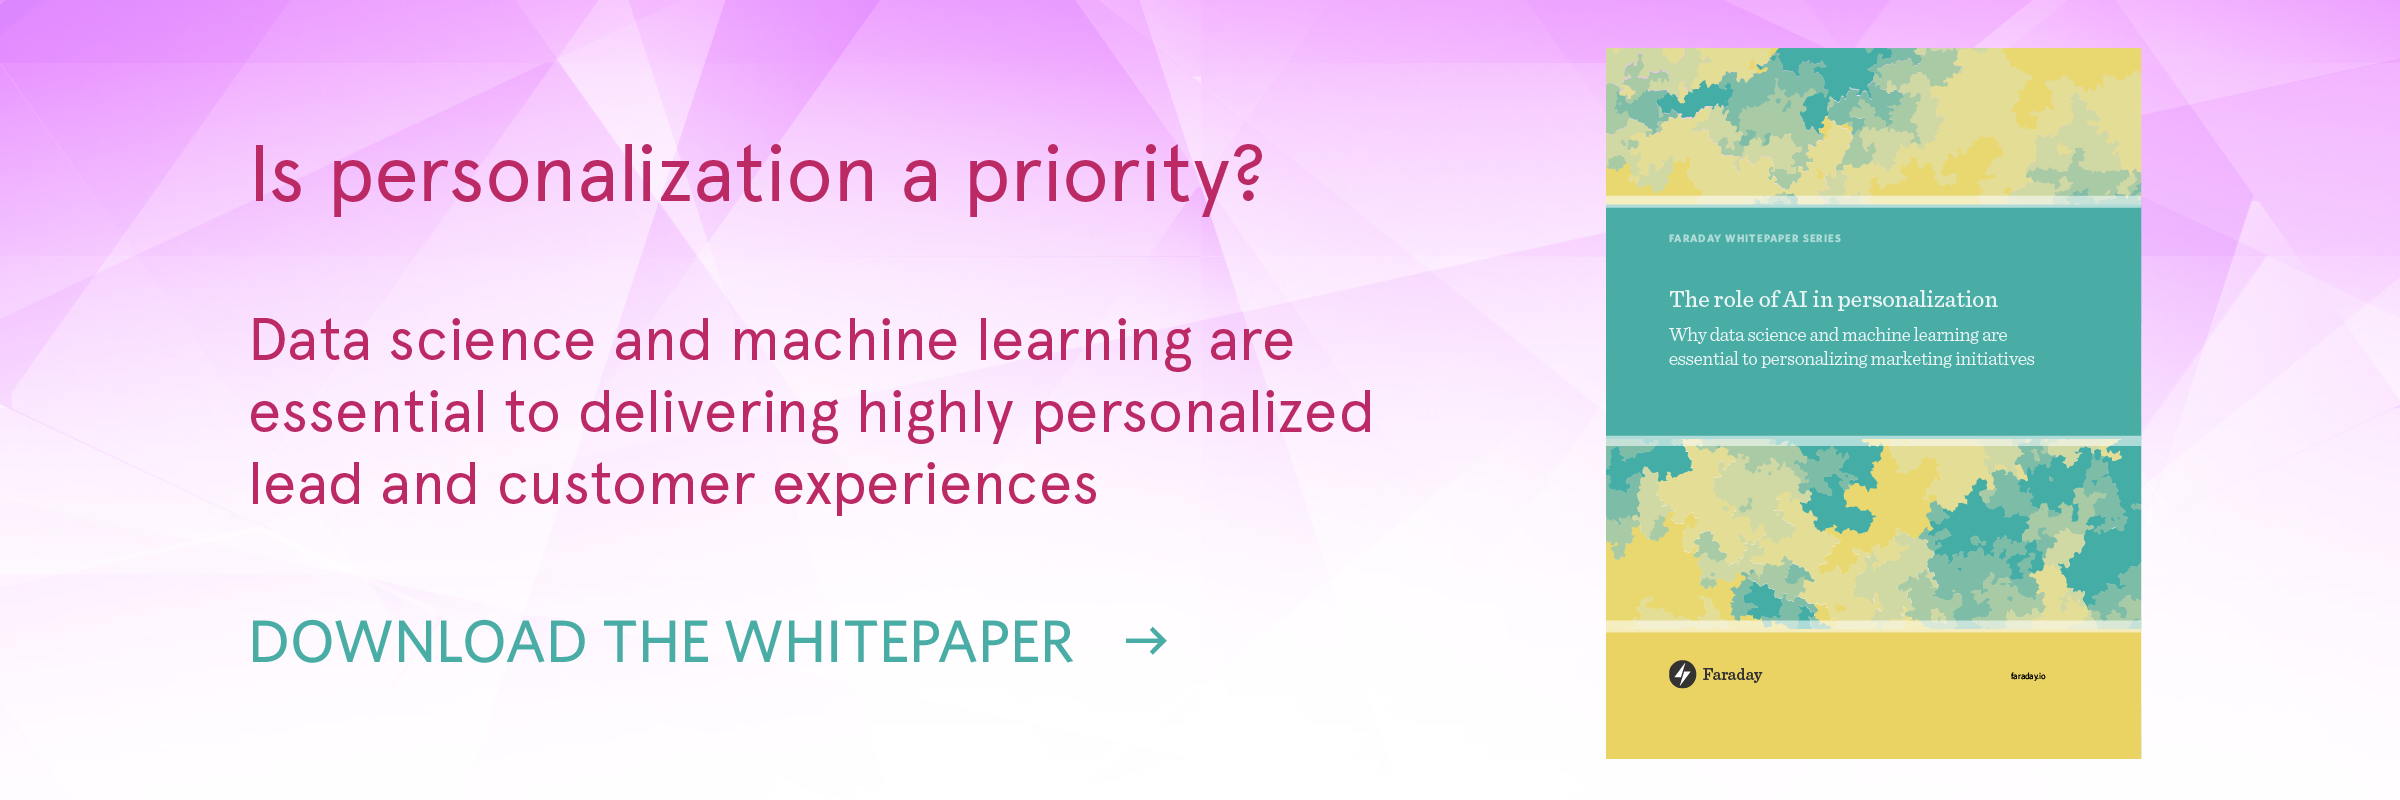 The role of AI in personalization whitepaper